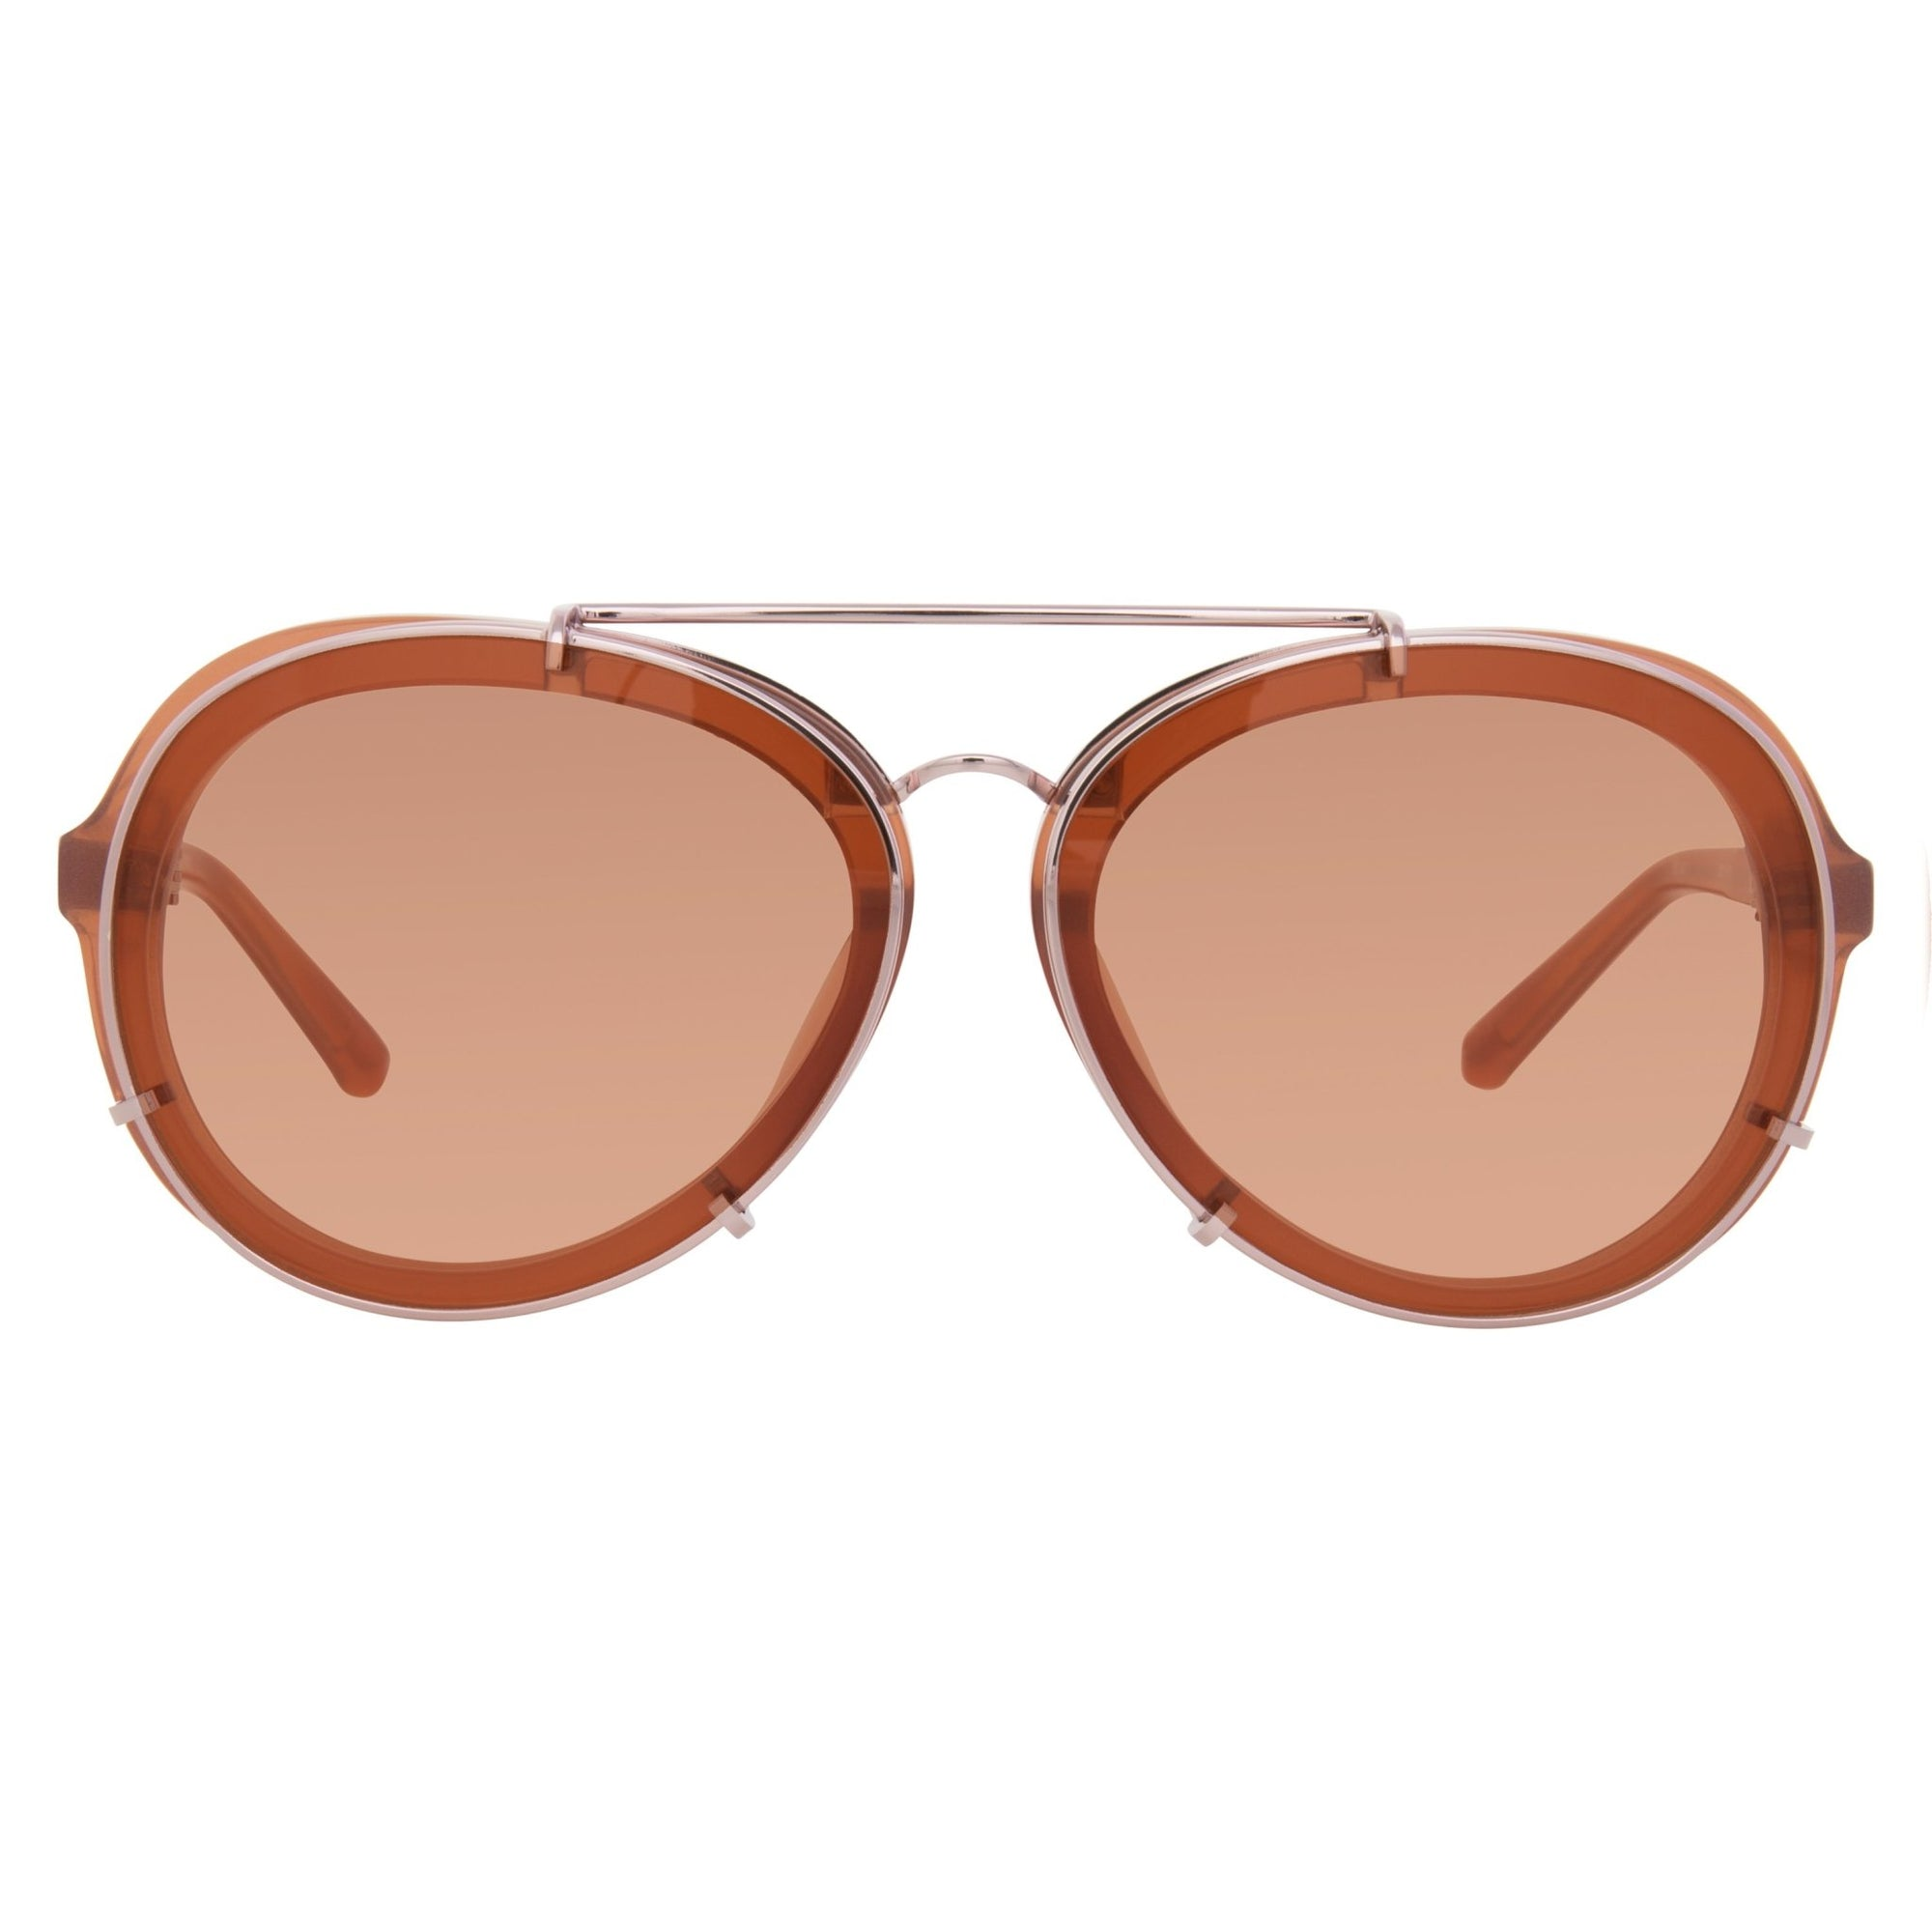 Phillip Lim Sunglasses Rose and Rose Gold Aviator with Rose Lenses Category 1 - PL170C3SUN - Watches & Crystals